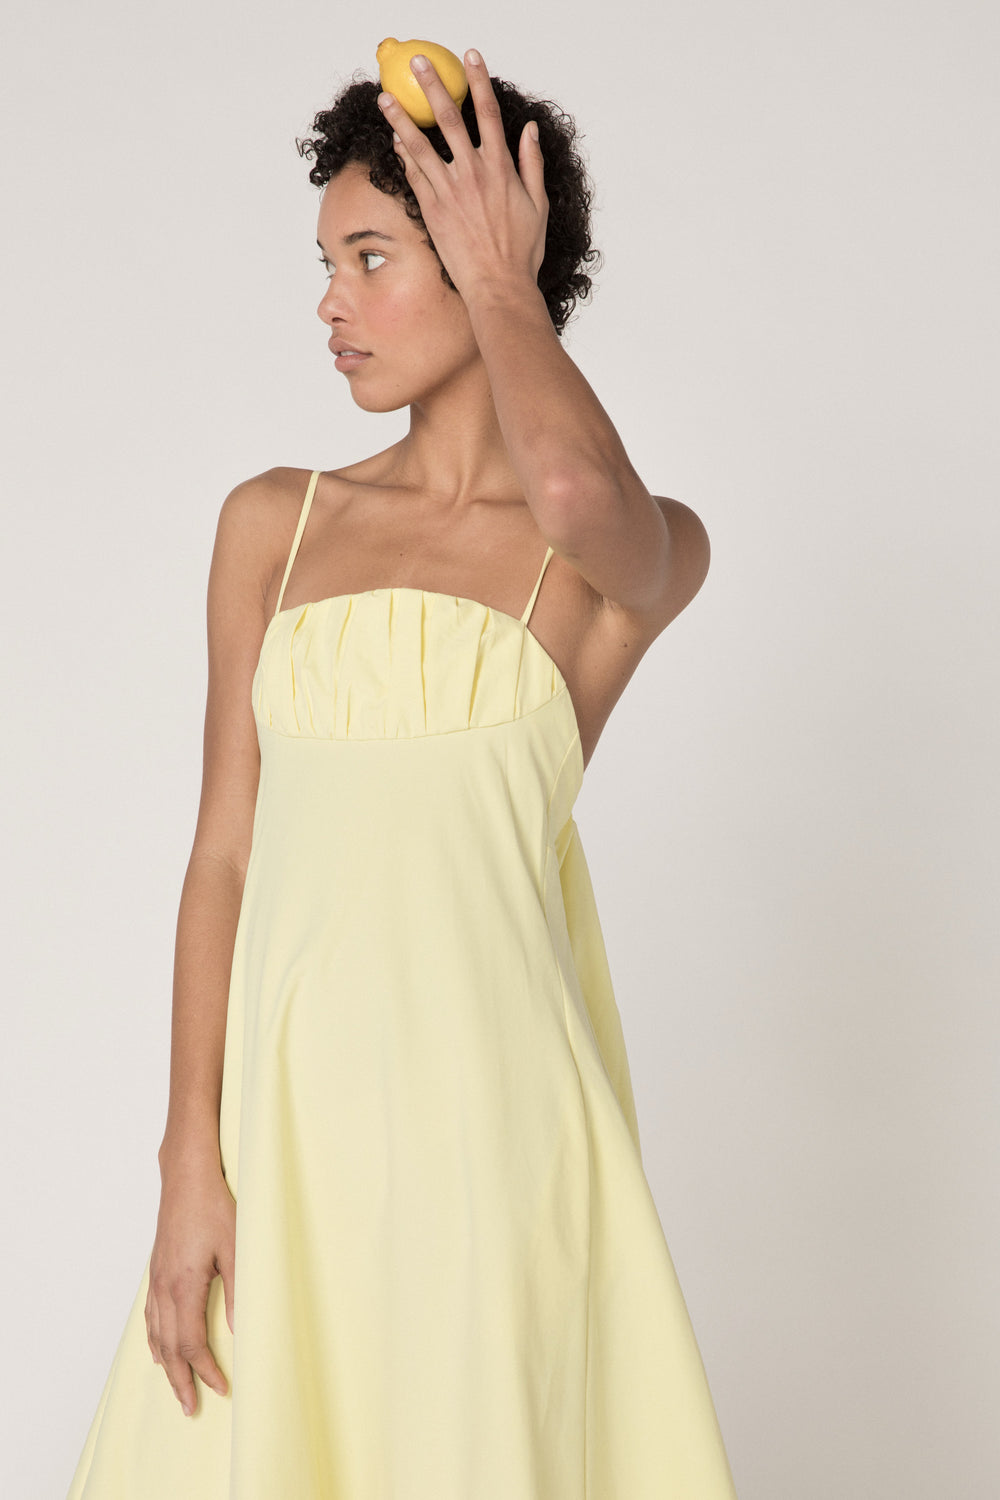 Rosie Assoulin Pre-Fall 2019 Cami Ruffle Hem Dress. Fluted cami dress. Empire waist. Ruffle hem. Low back. Pockets. Yellow. 100% Cotton. Sizes 0 - 12.